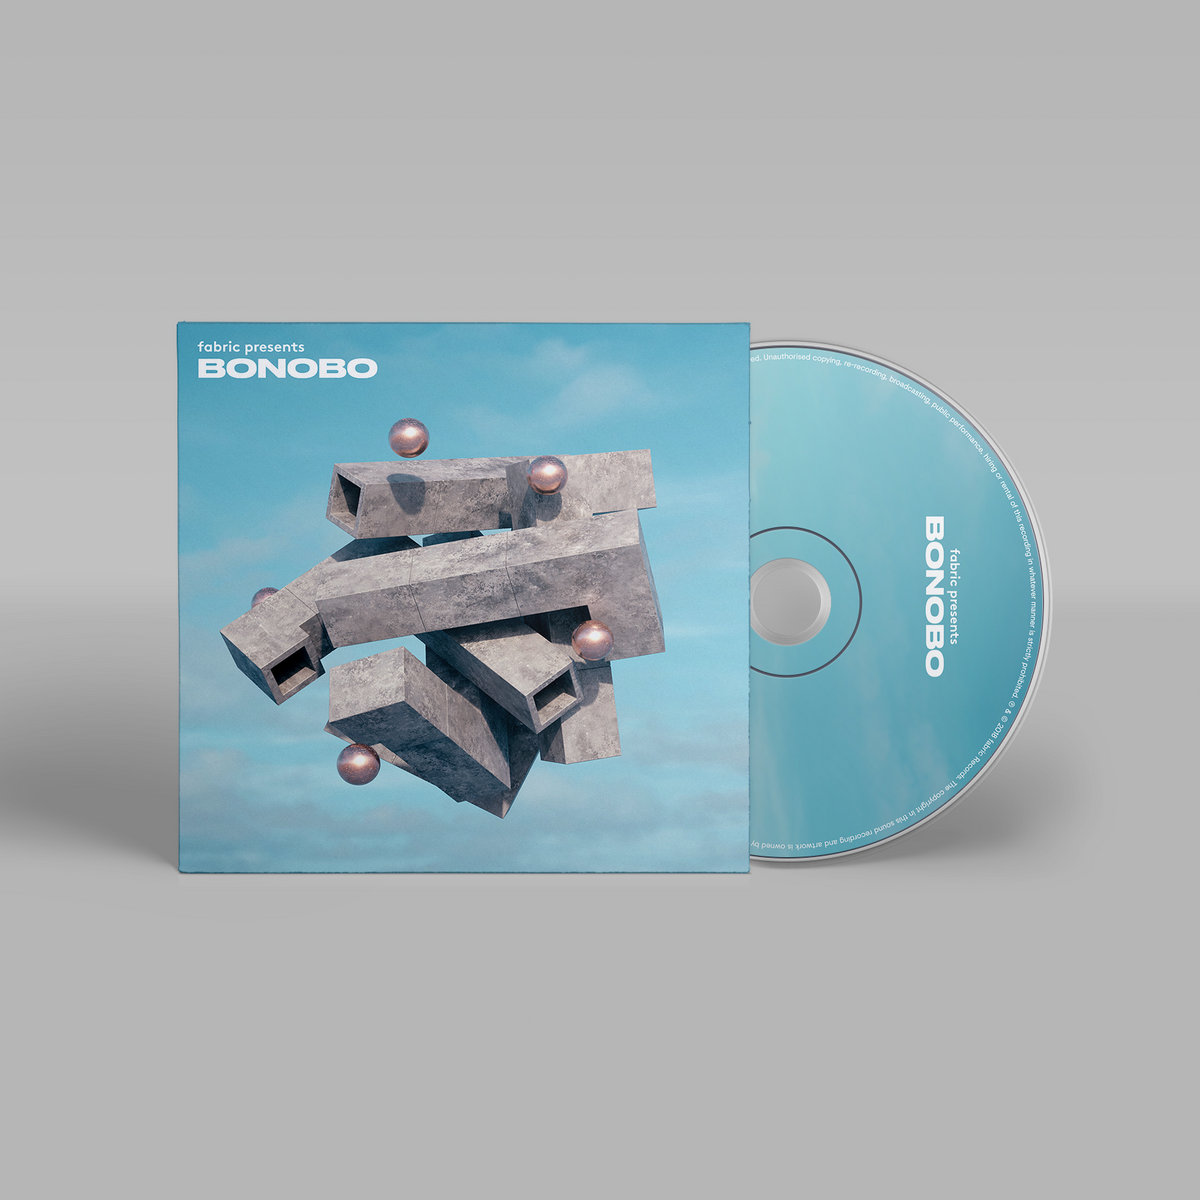 486fa87aed28 CD Album compilation by Bonobo TRACKLISTING CD: 01 Bonobo - Flicker 02  Bonobo - Boston Common 03 Poté - Jacquot (Waters of Praslin)